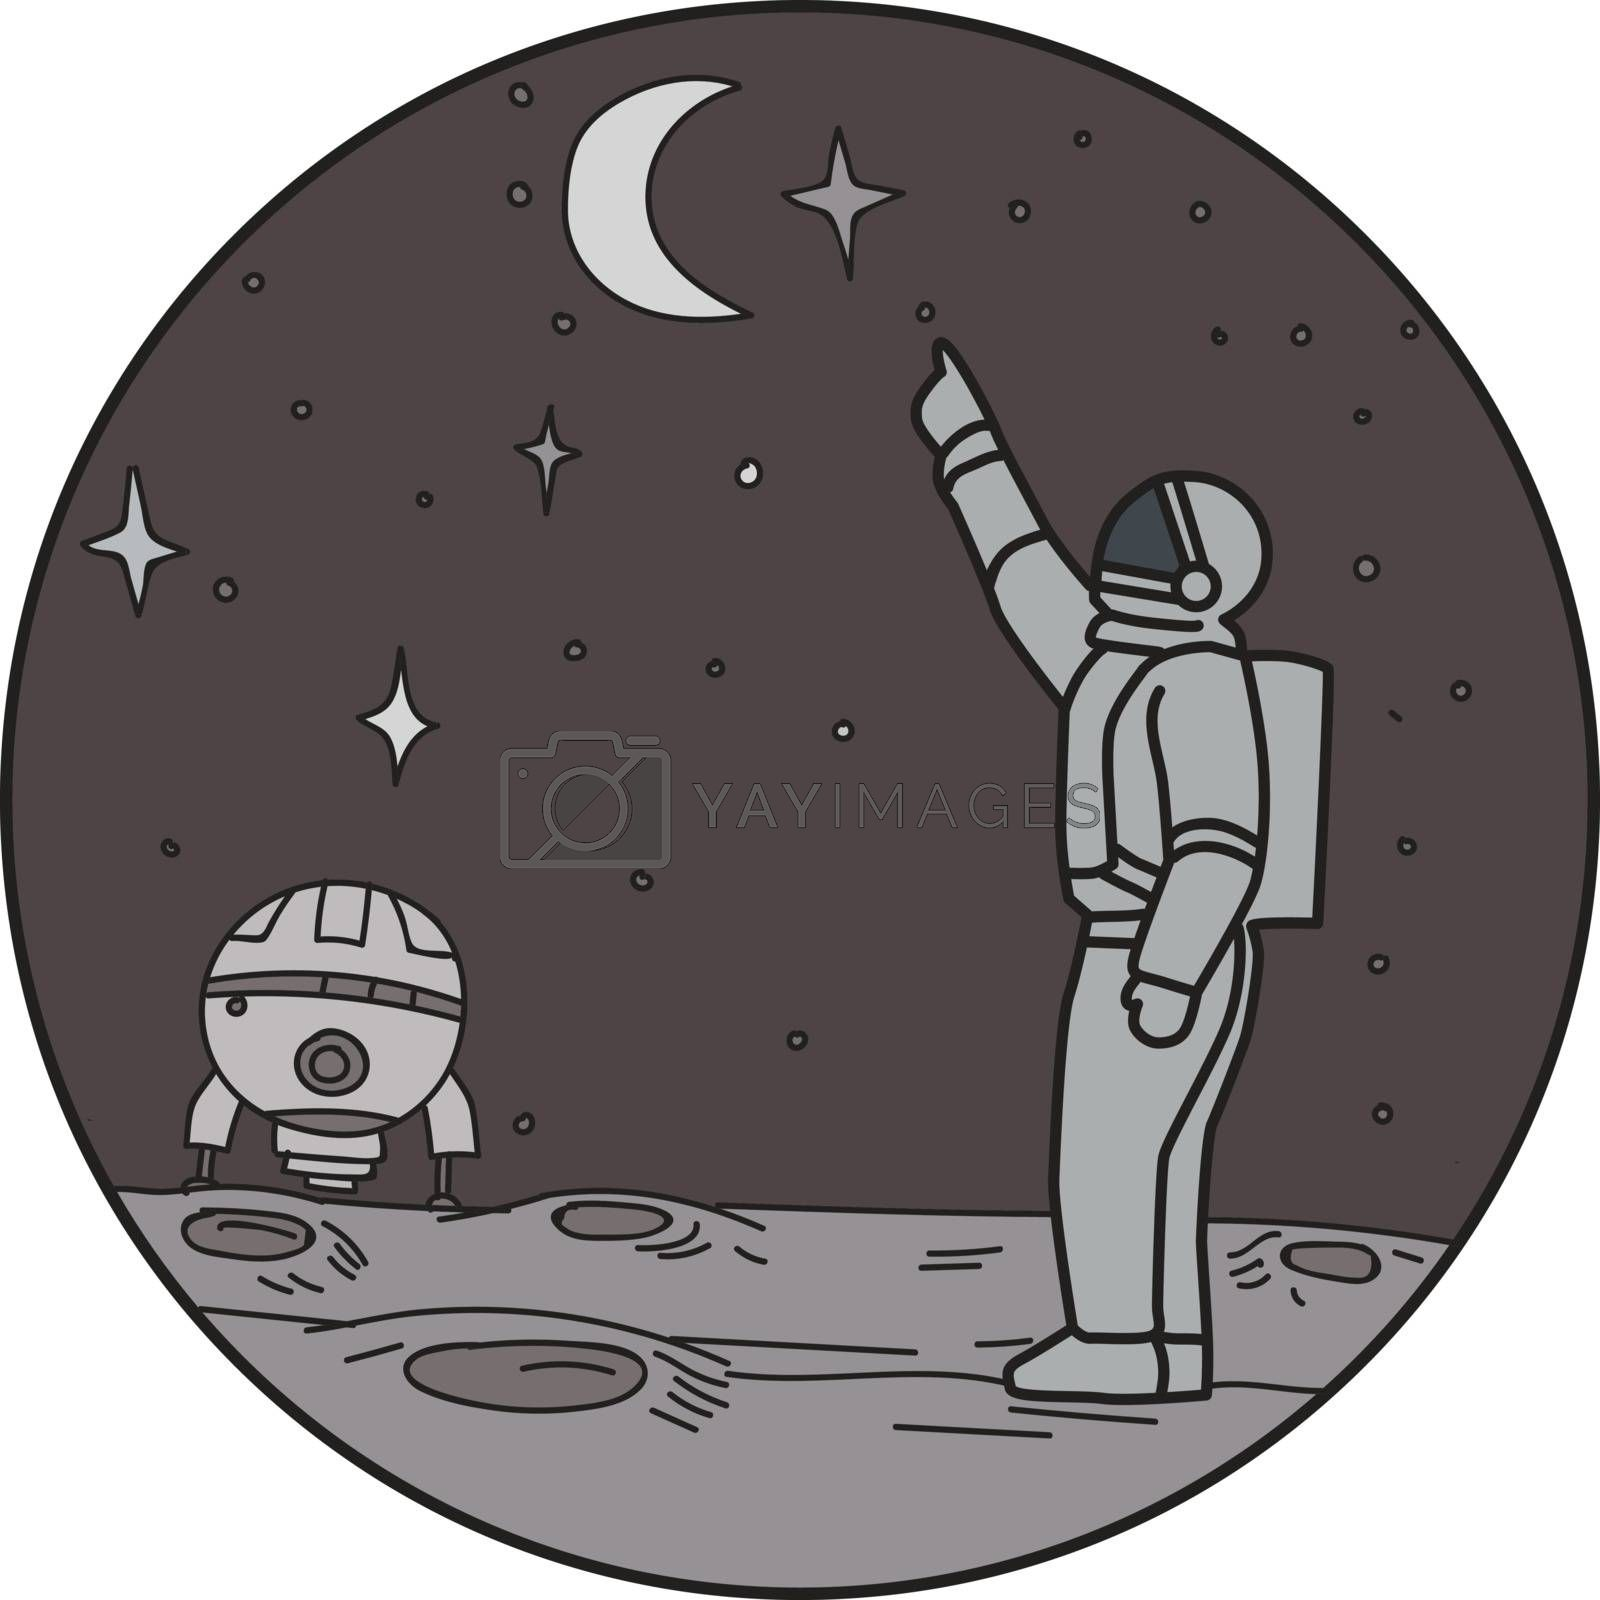 Mono line style illustration of an astronaut in outer space pointing up to the stars and moon with shuttle in the background set inside circle.